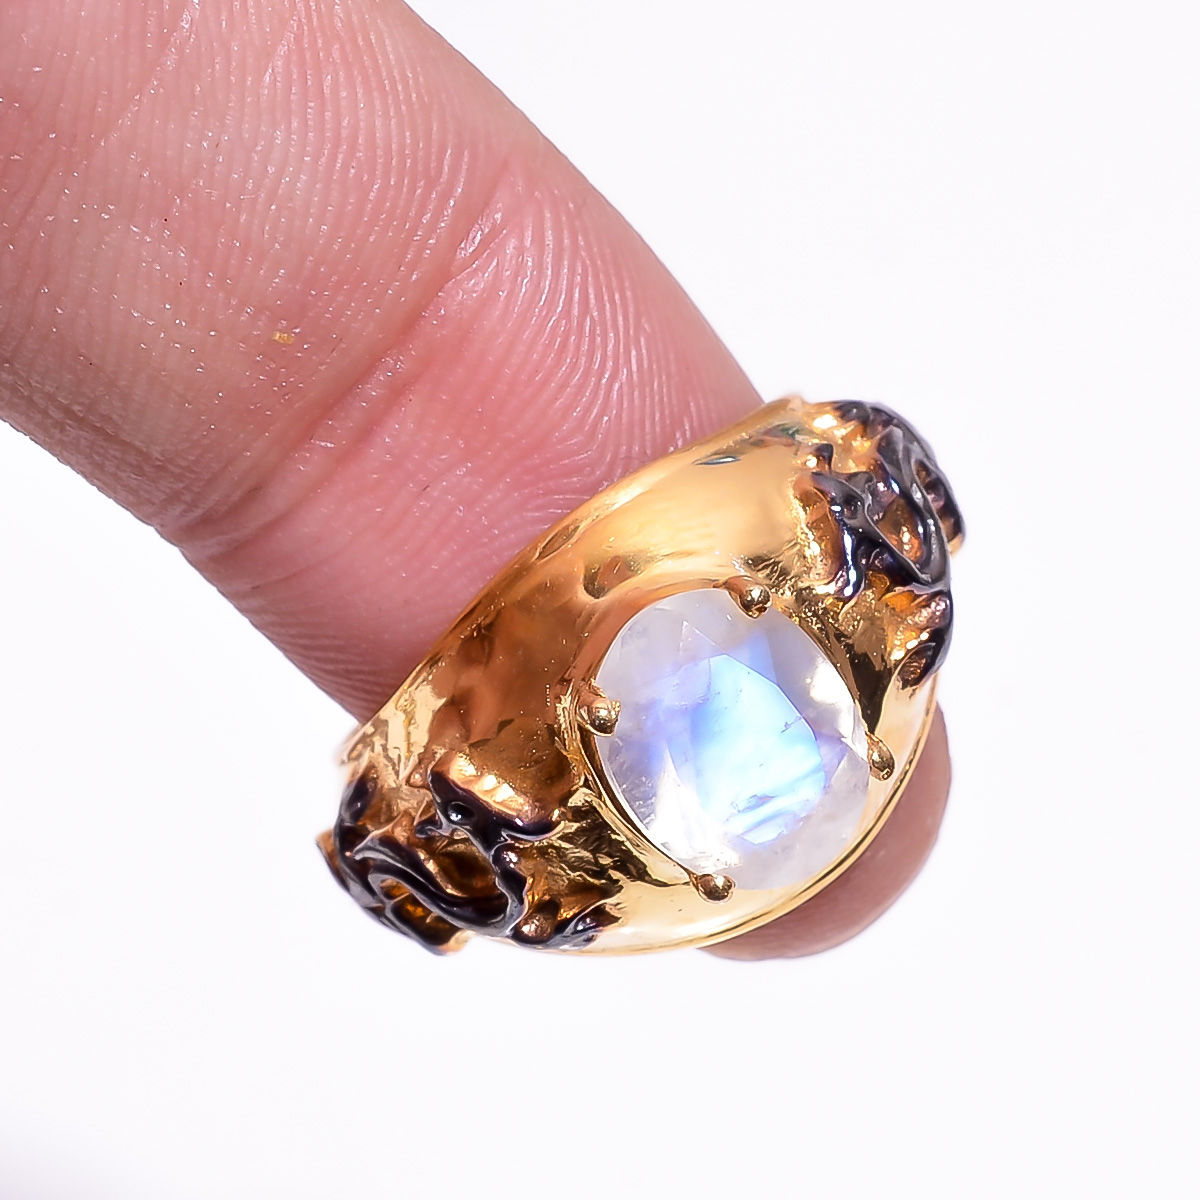 925 Sterling Silver Gold Plated & Black Rhodium Two Tone Rainbow Moonstone Ring Size 6.5